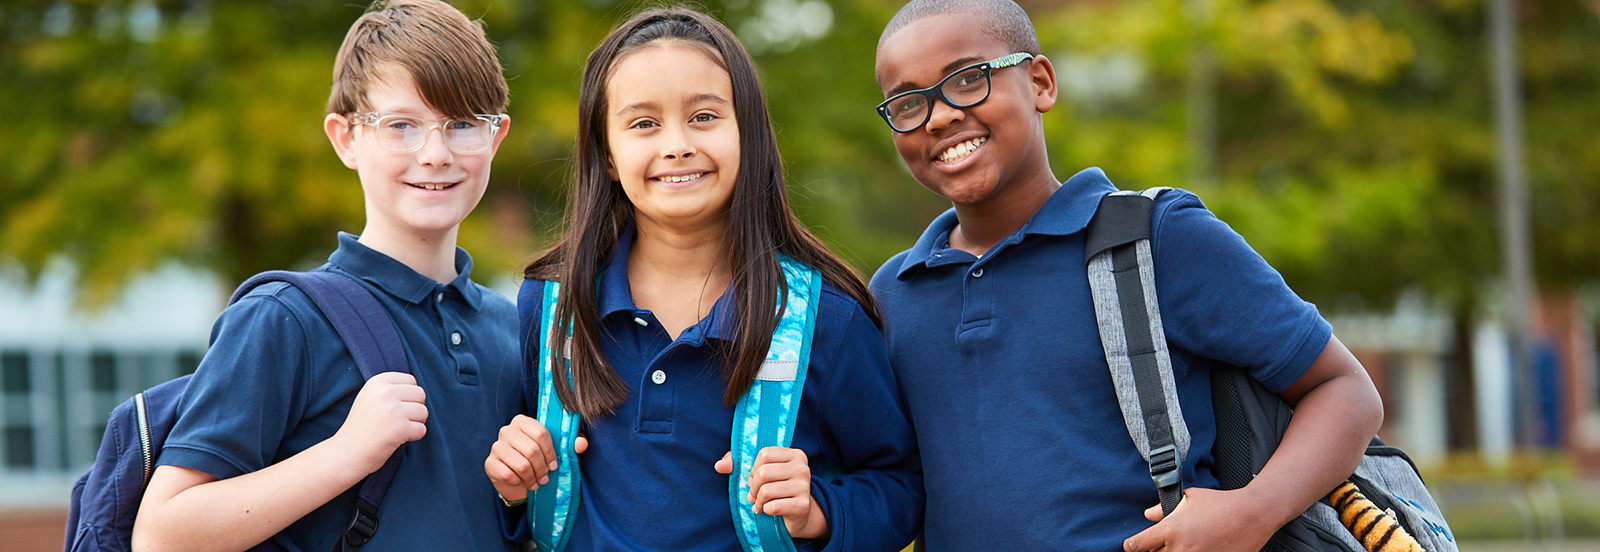 three students posing with backpacks